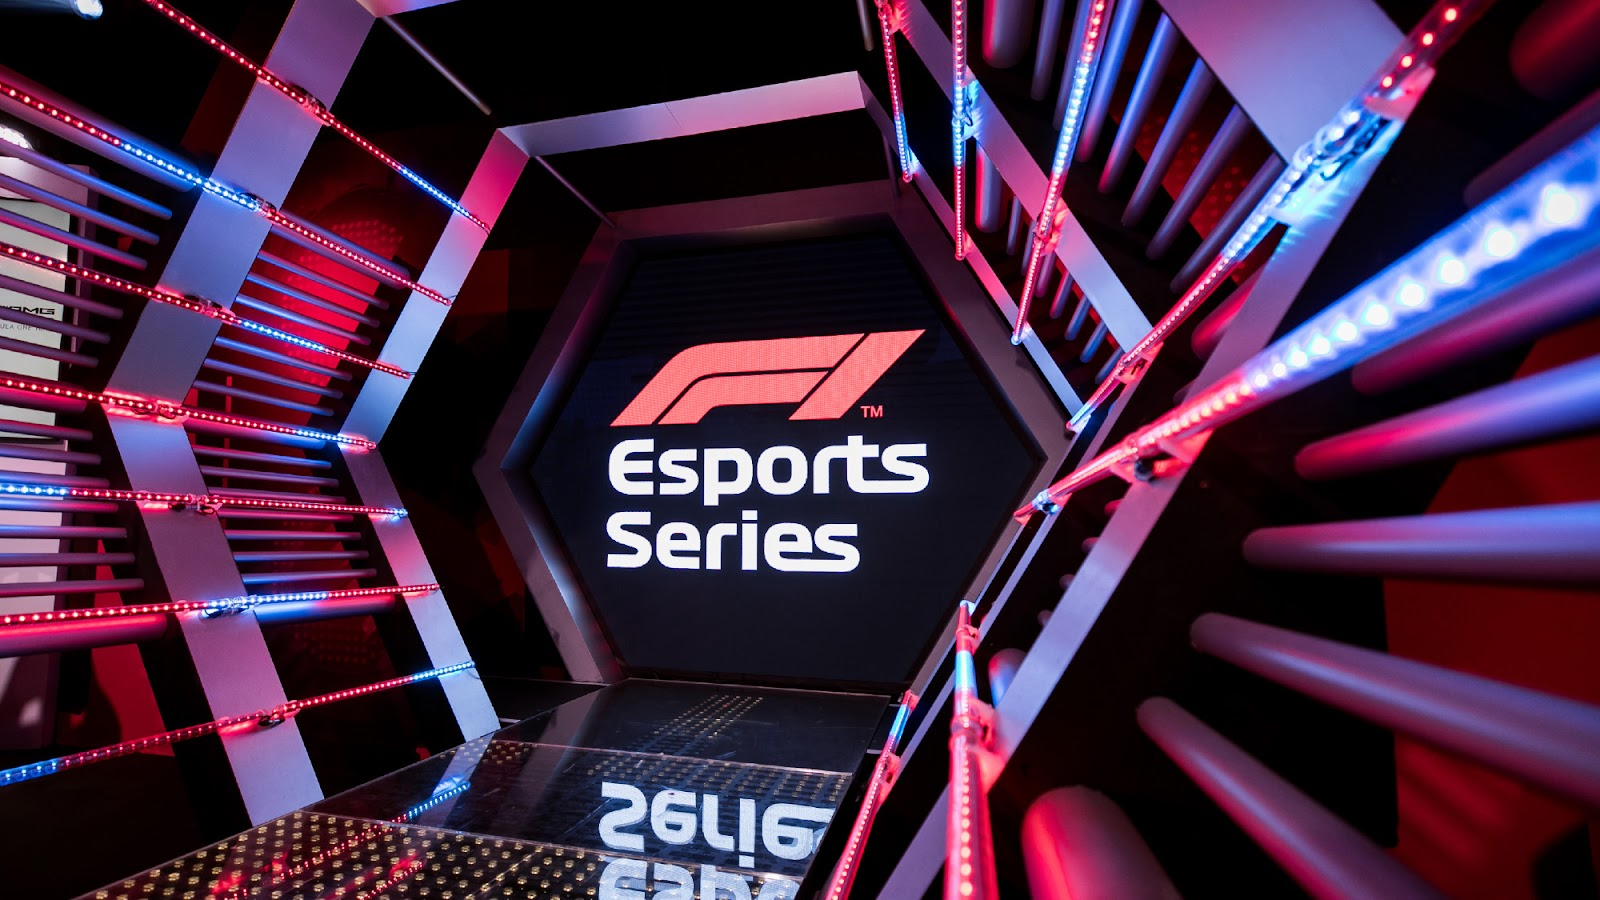 The Esports Series is the most bankable F1 Esports tournament of the year